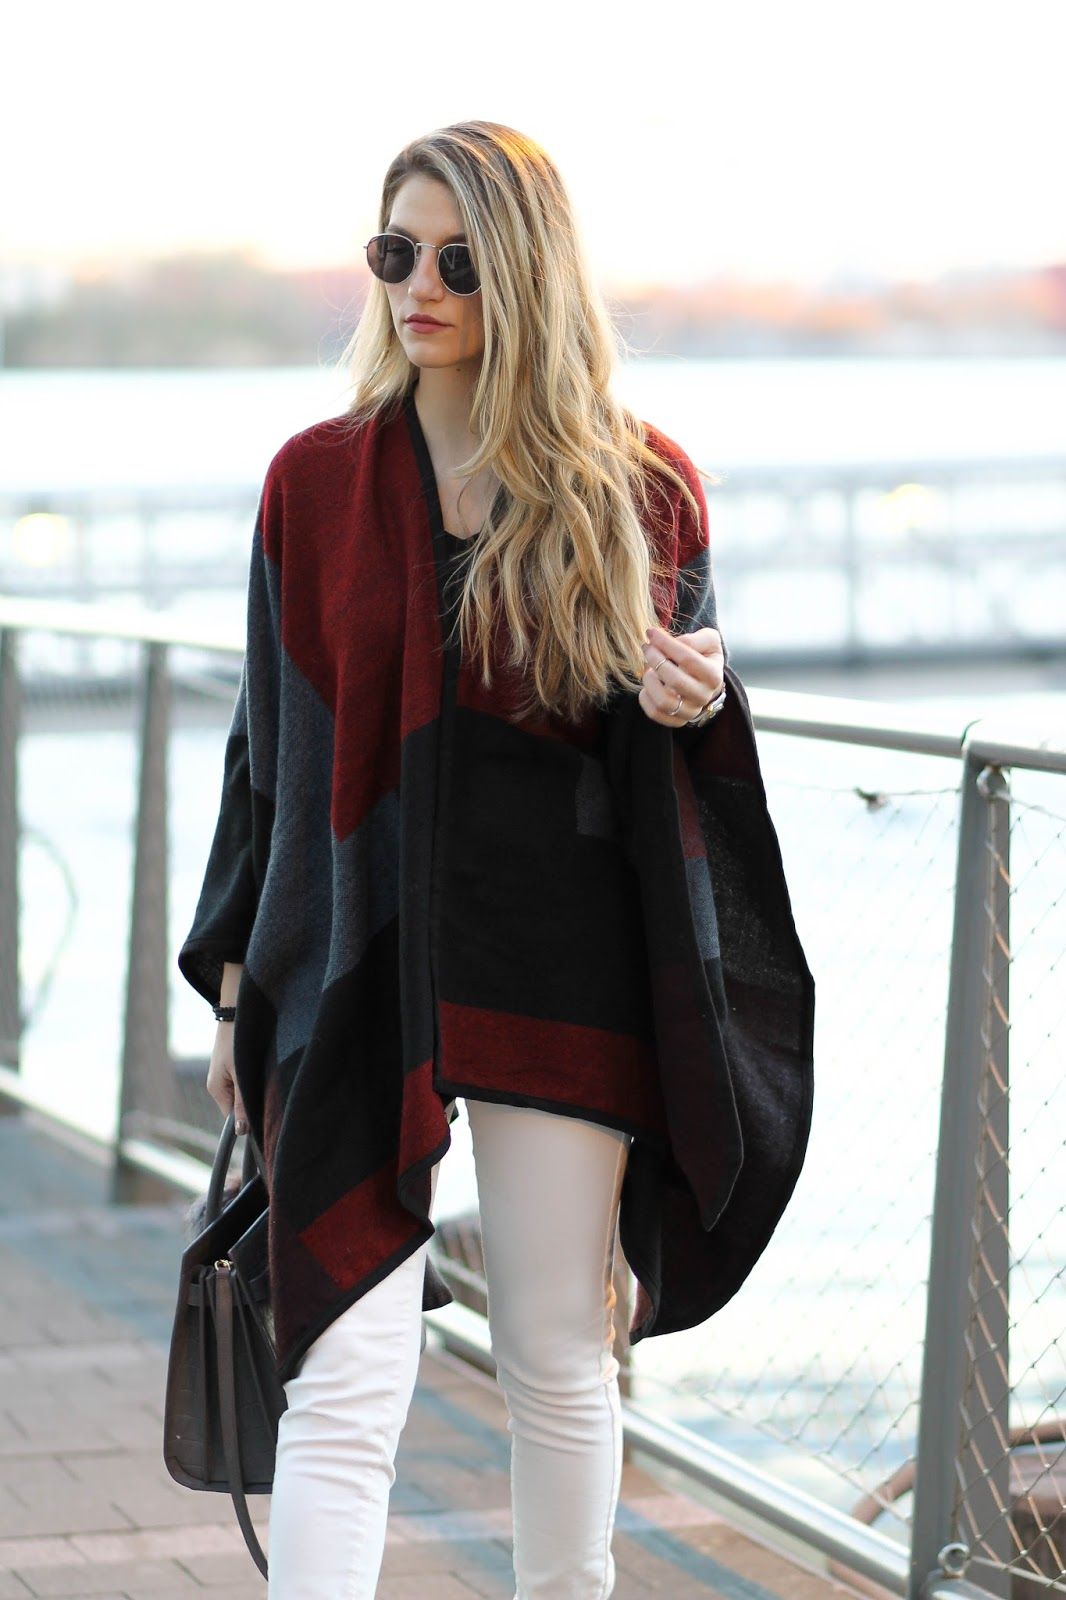 freyrs sunglasses, color block poncho